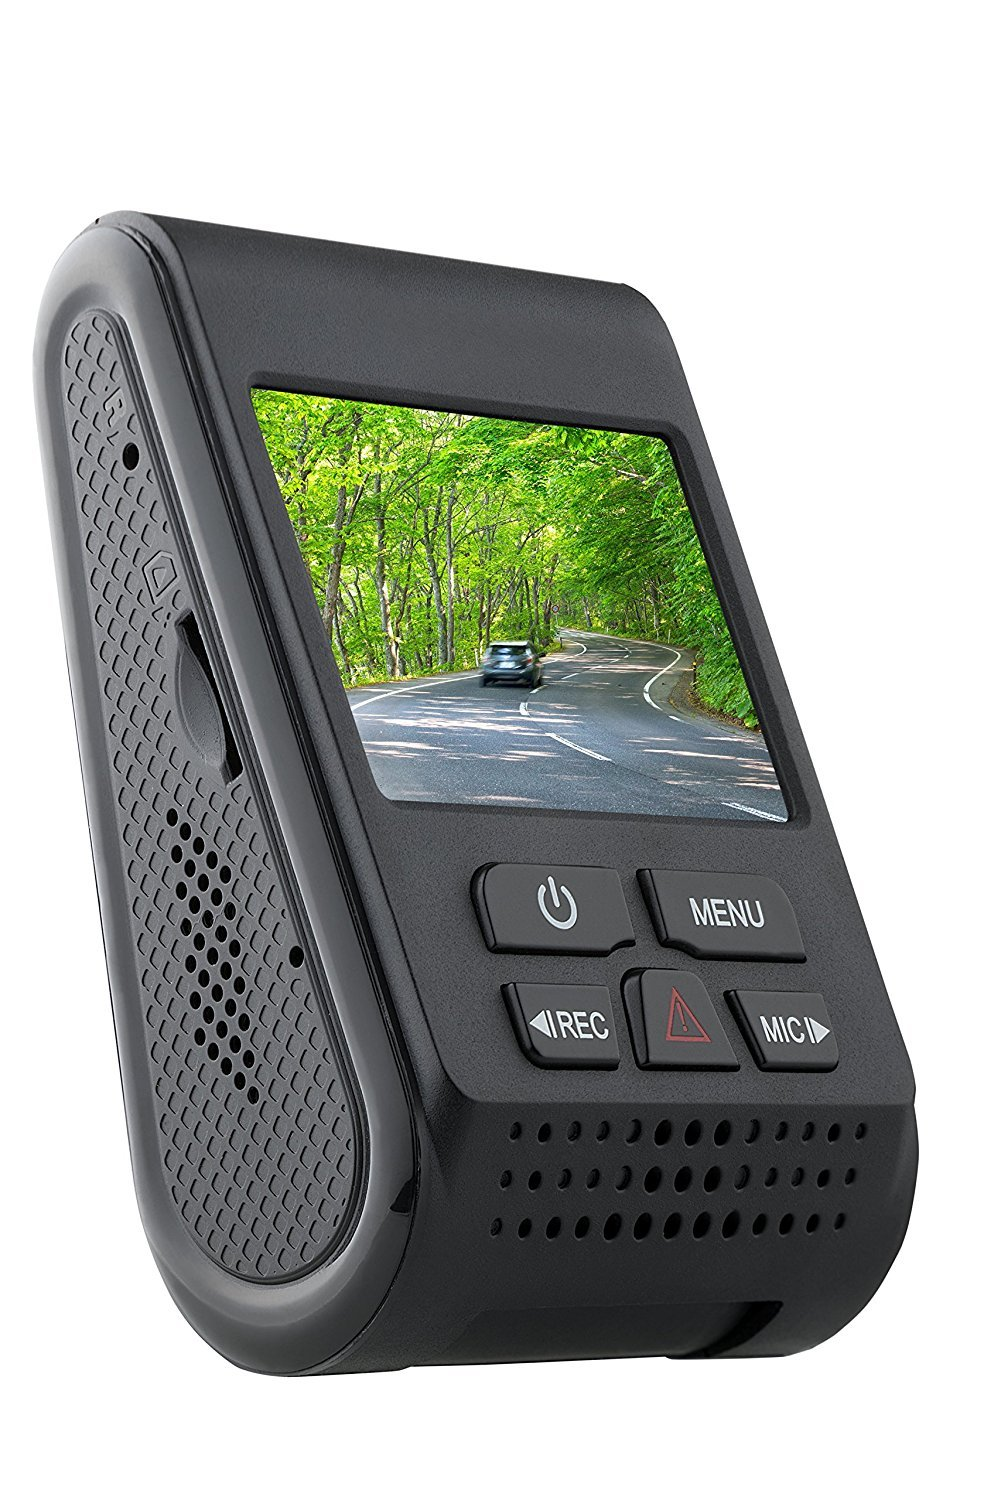 Spytec A119 Version 2 Car Dash 60 Fps 1440p Camera With Loop  Playstation Network Card 100000 Idr Digital Code Gps Logger Mount G Sensor Wide Angle Lens And Low Light Recording Photo